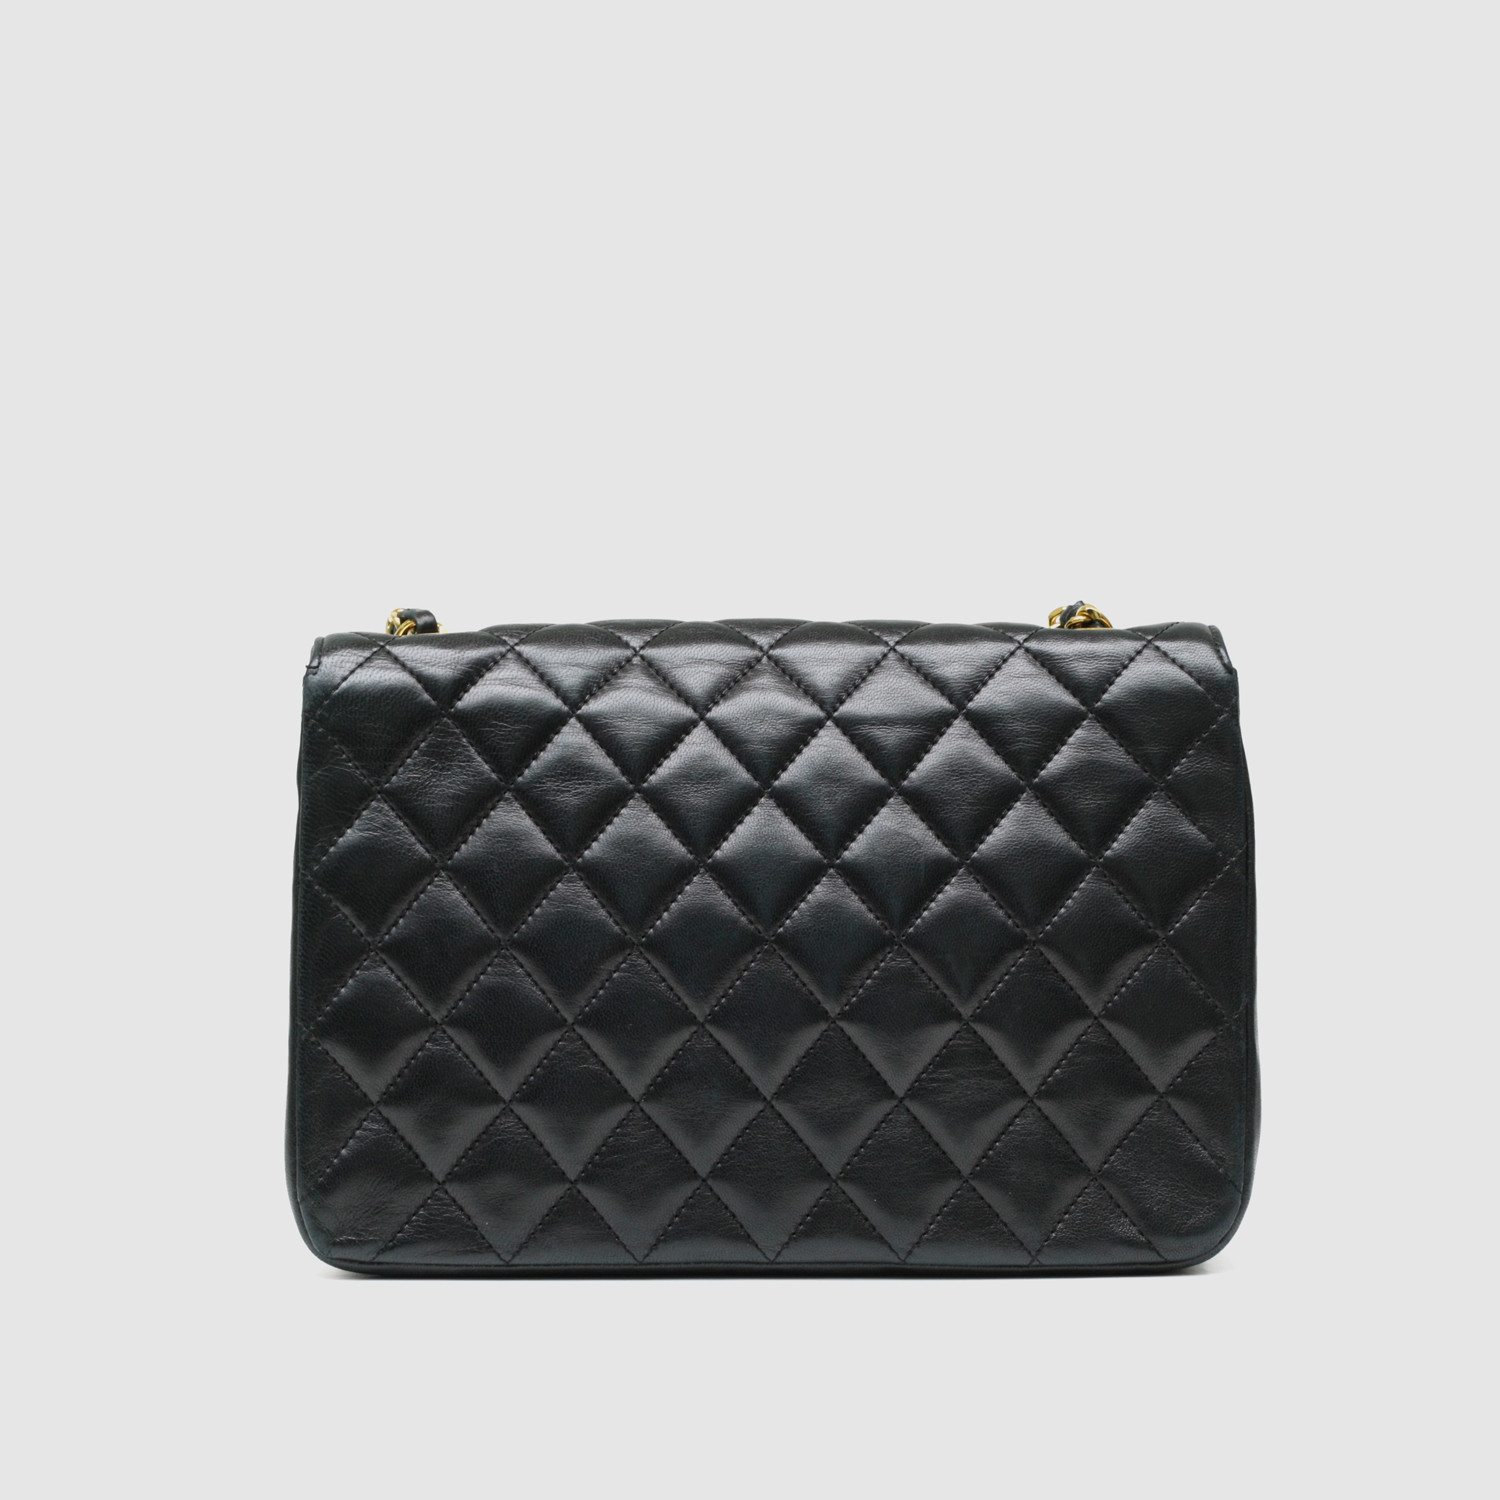 Chanel Small Flap Bag // Black Quilted Lambskin - Vintage Luxury ... : coco chanel quilted handbag - Adamdwight.com